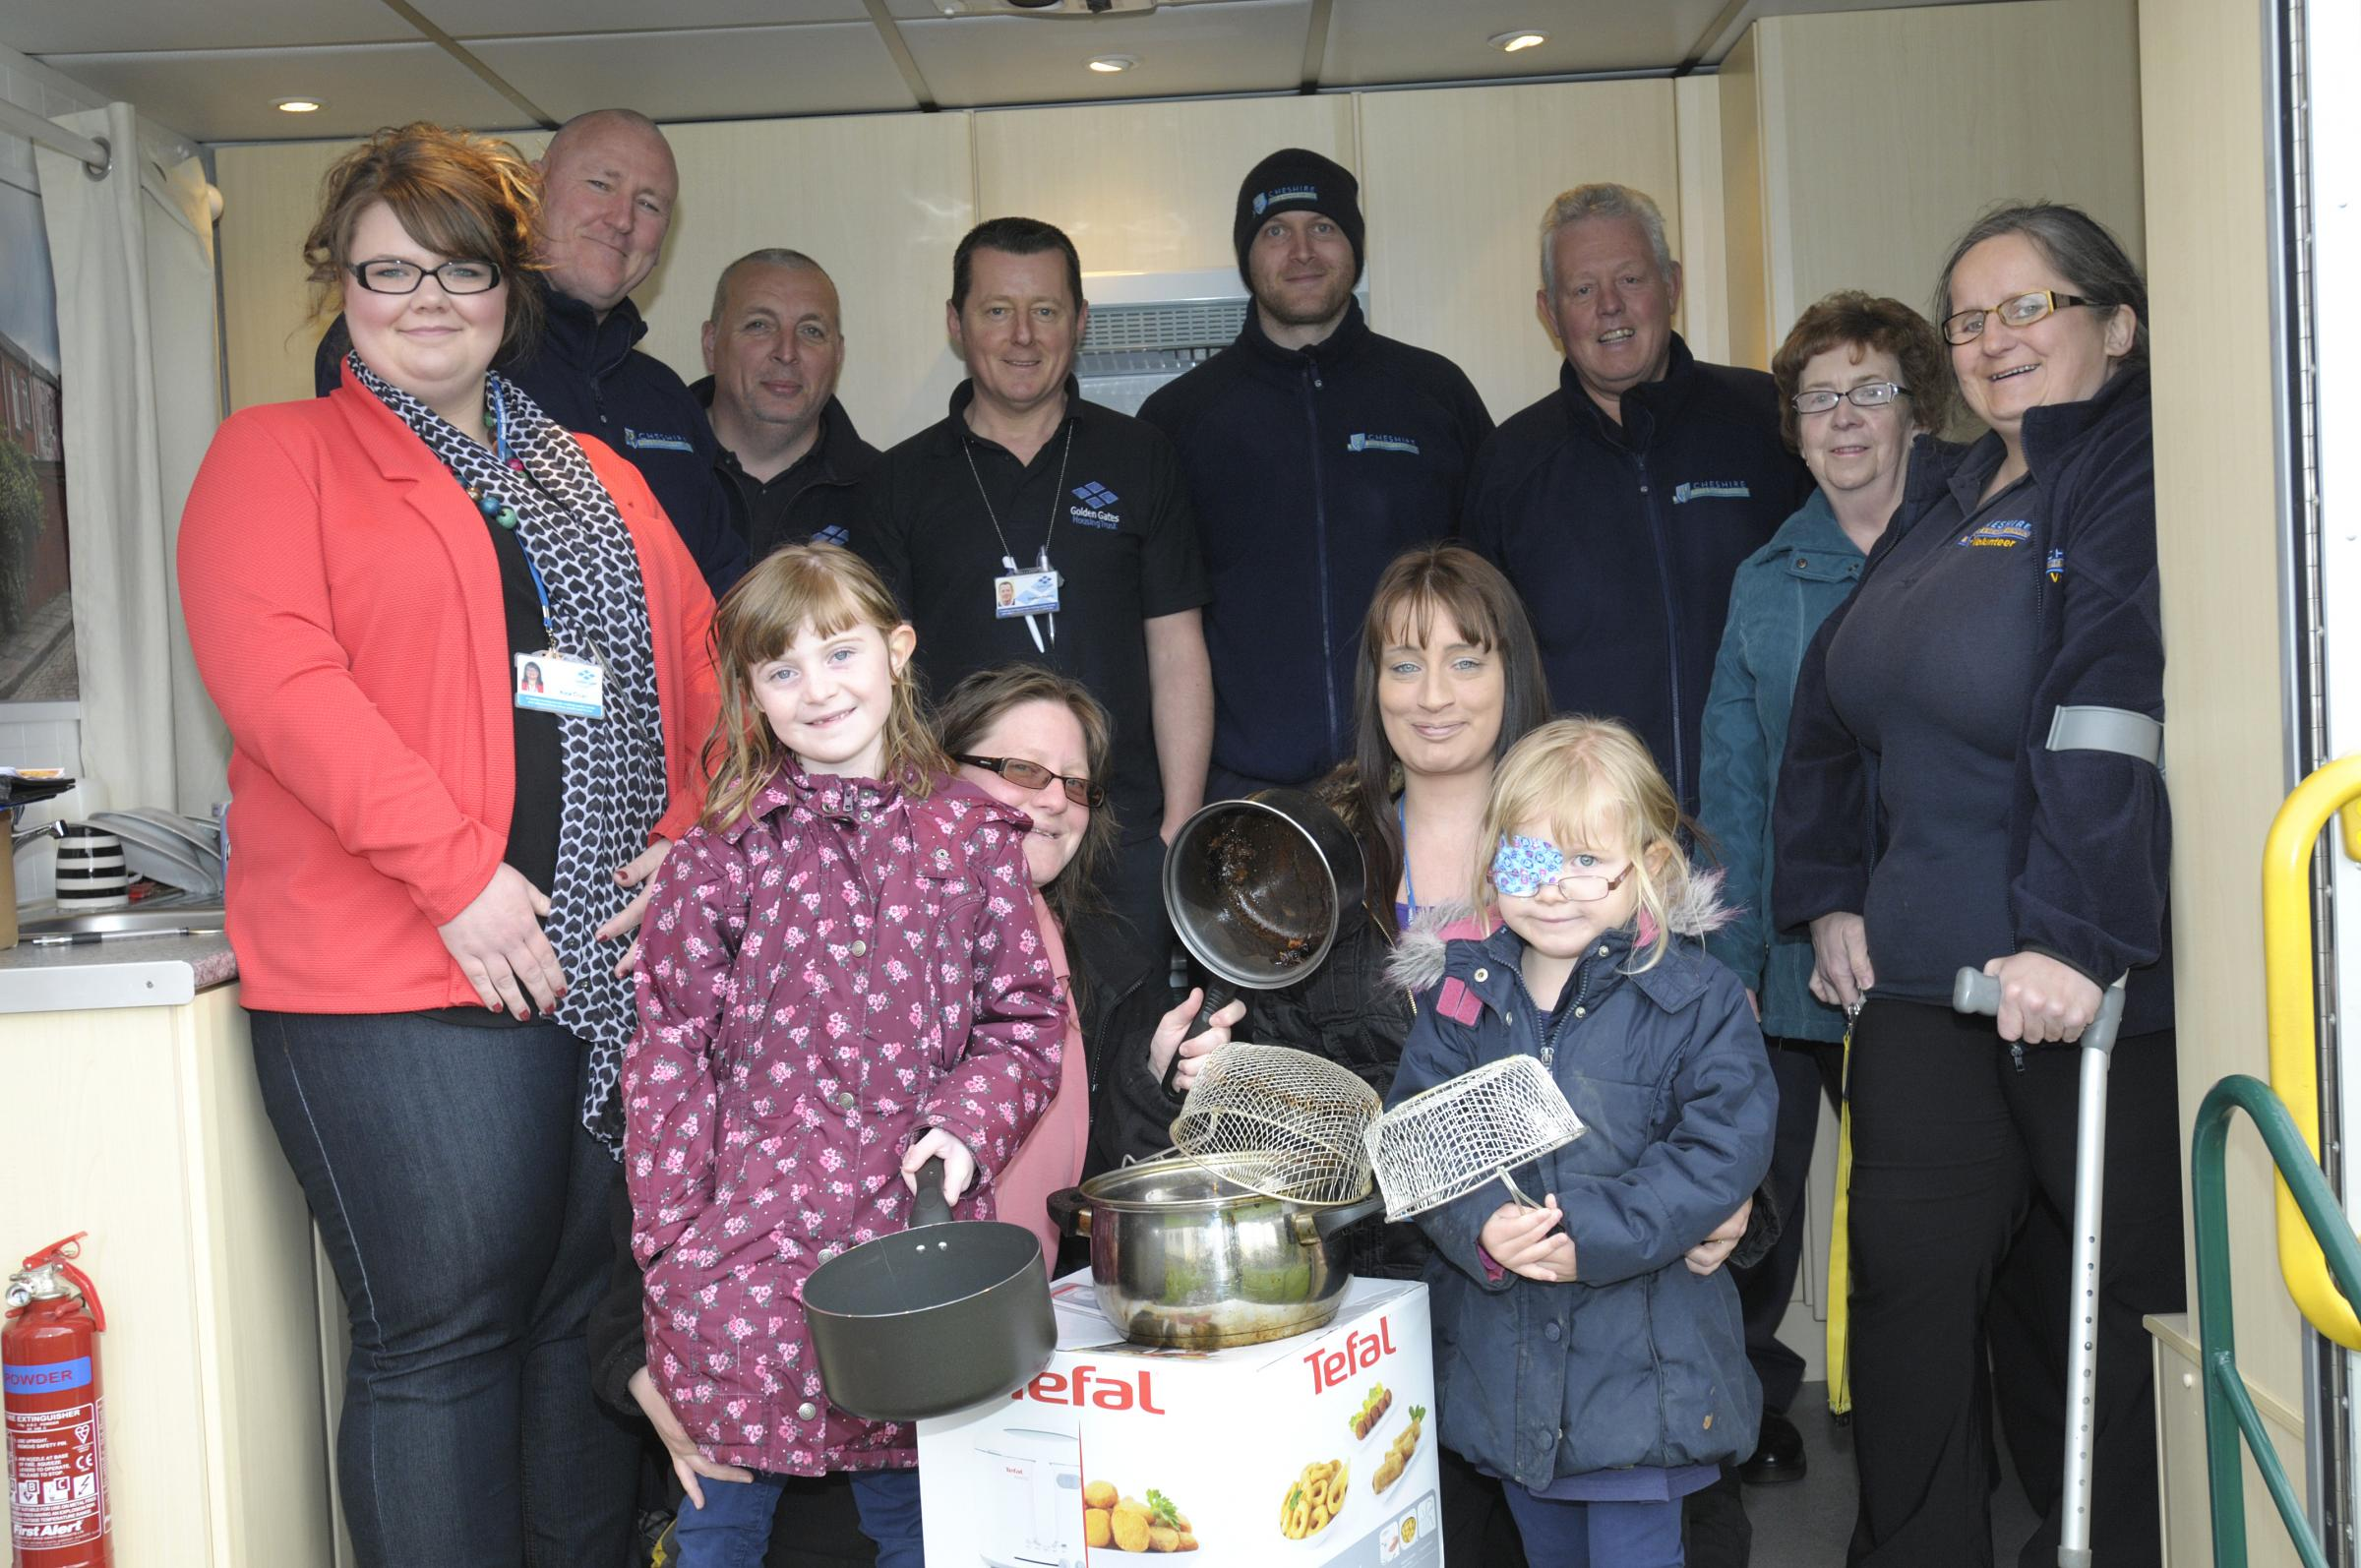 Staff from Golden Gates Housing Trust, Cheshire Fire and Rescue Service and the Warrington public health team help residents swap to healthier and safer frying methods